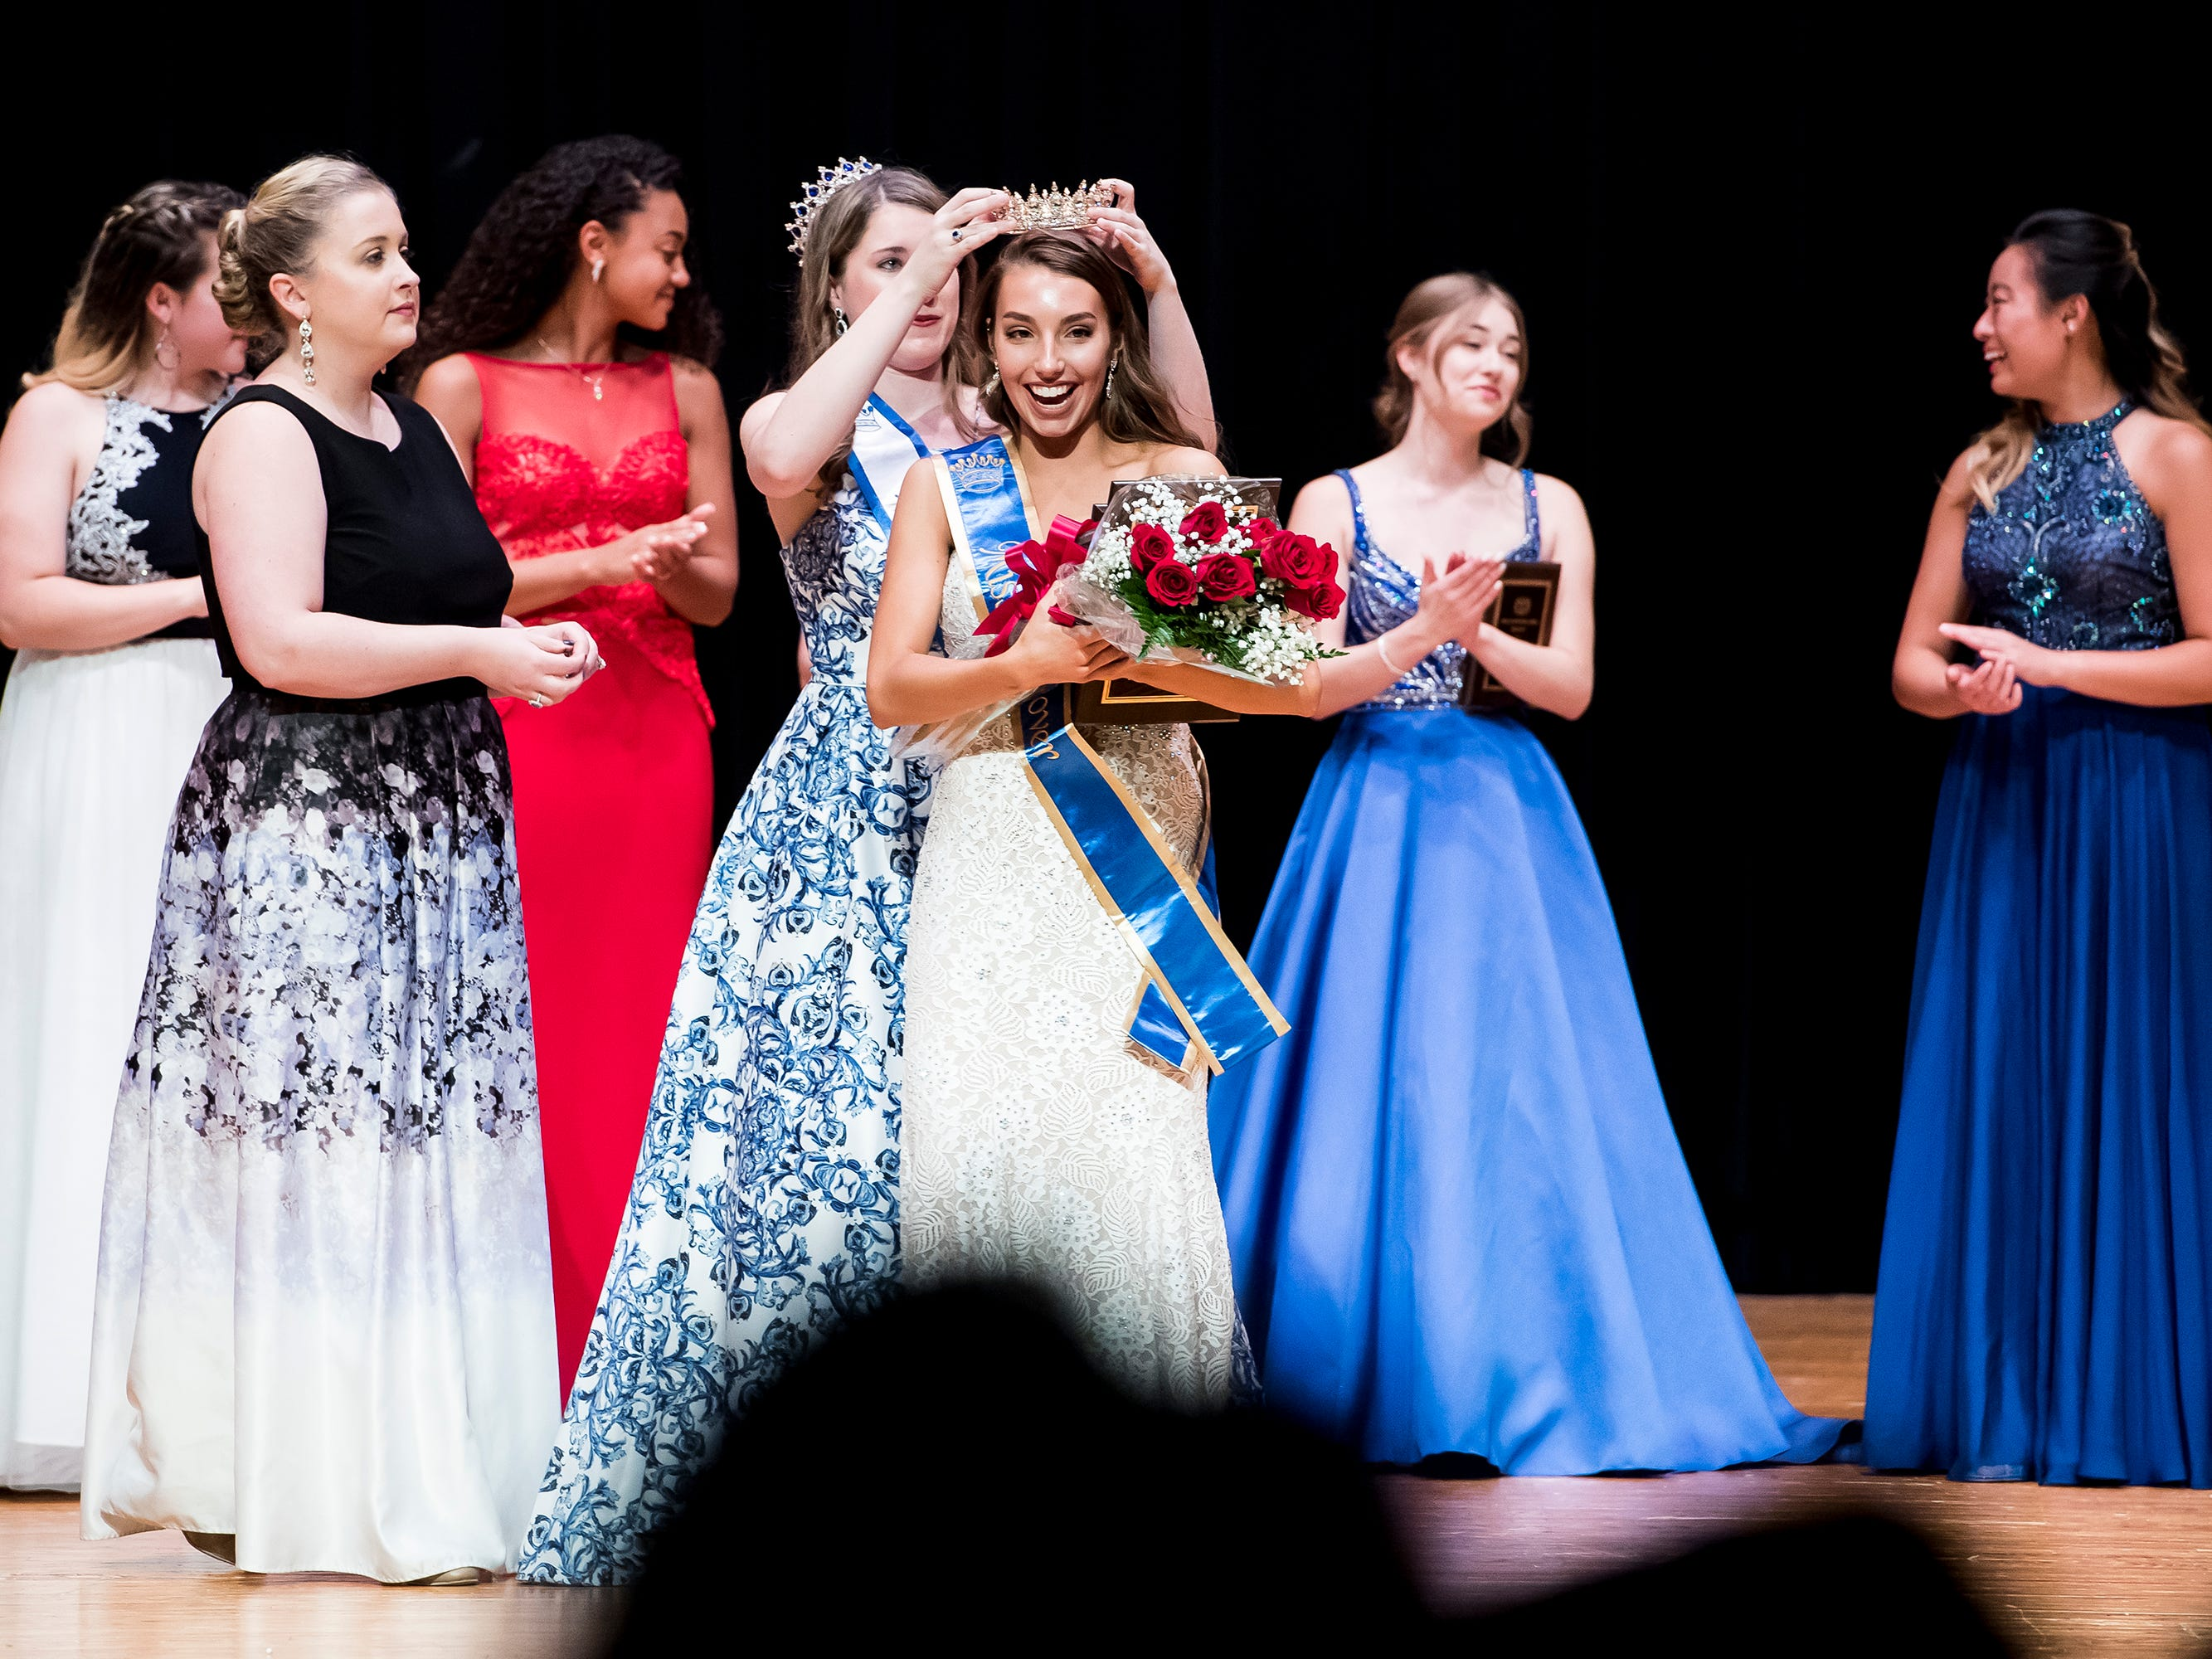 South Western's Madlyn Farley is crowned the 50th Miss Hanover Area at New Oxford High School on Monday, October 22, 2018.